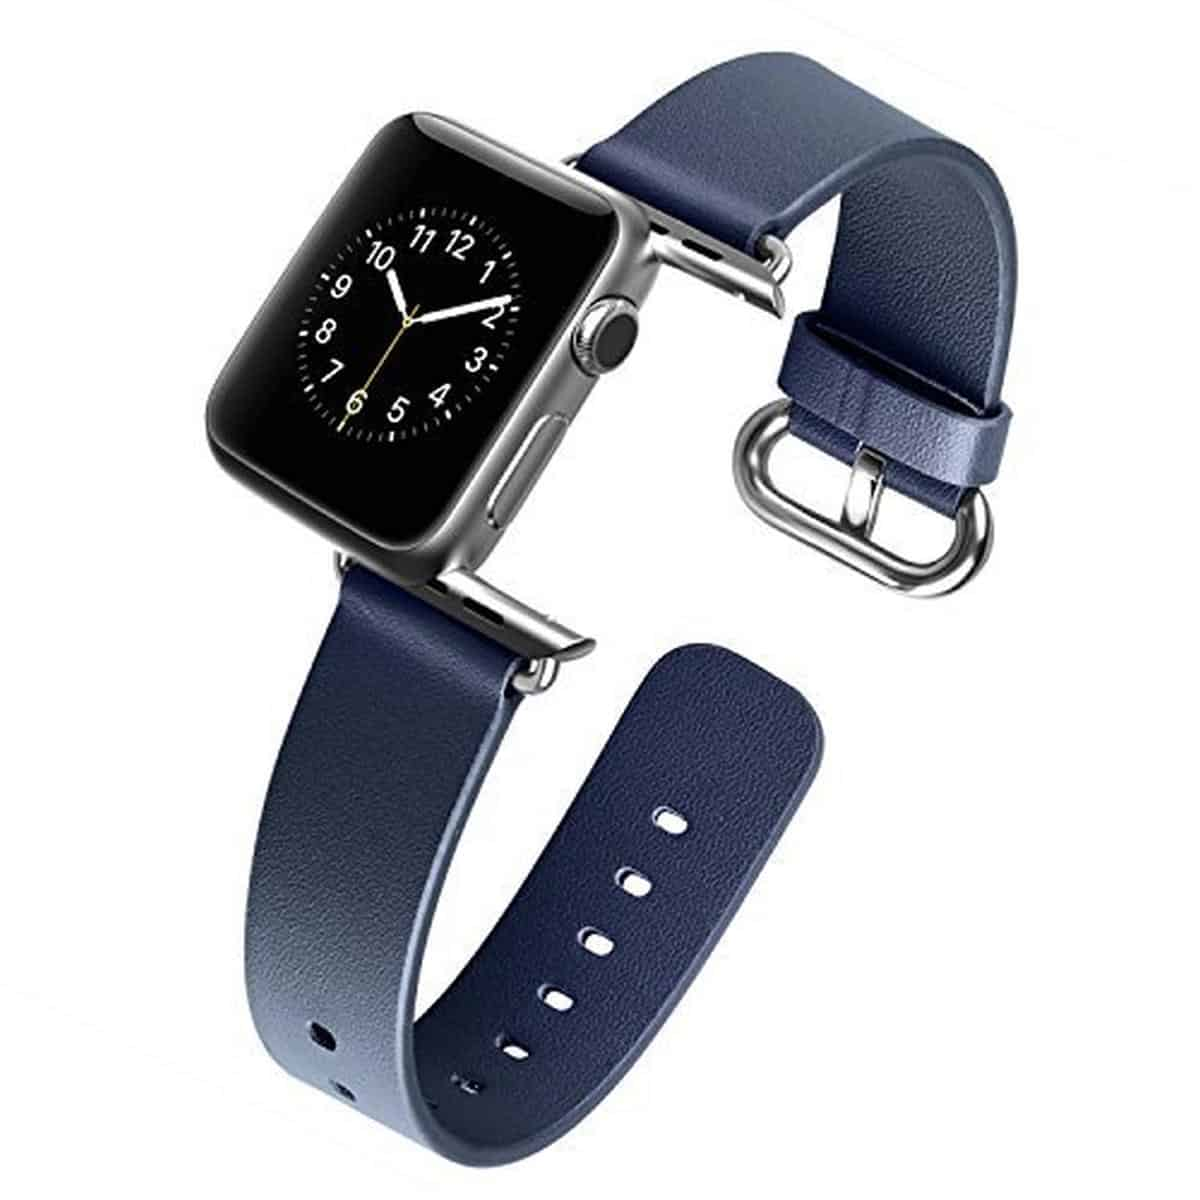 J&D Tech Leather Strap for Apple Watch | Apple Watch Accessories You Didn't Know You Needed